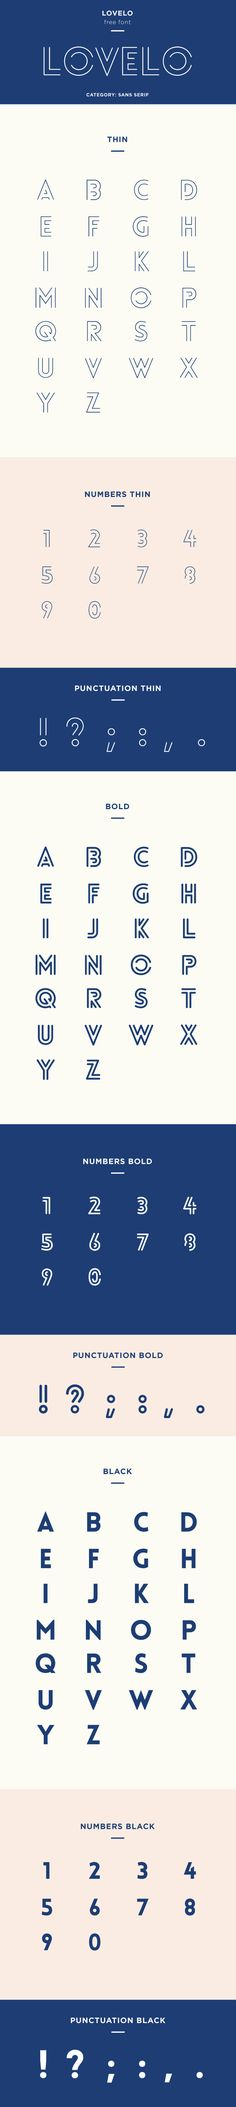 lovelo free font family download